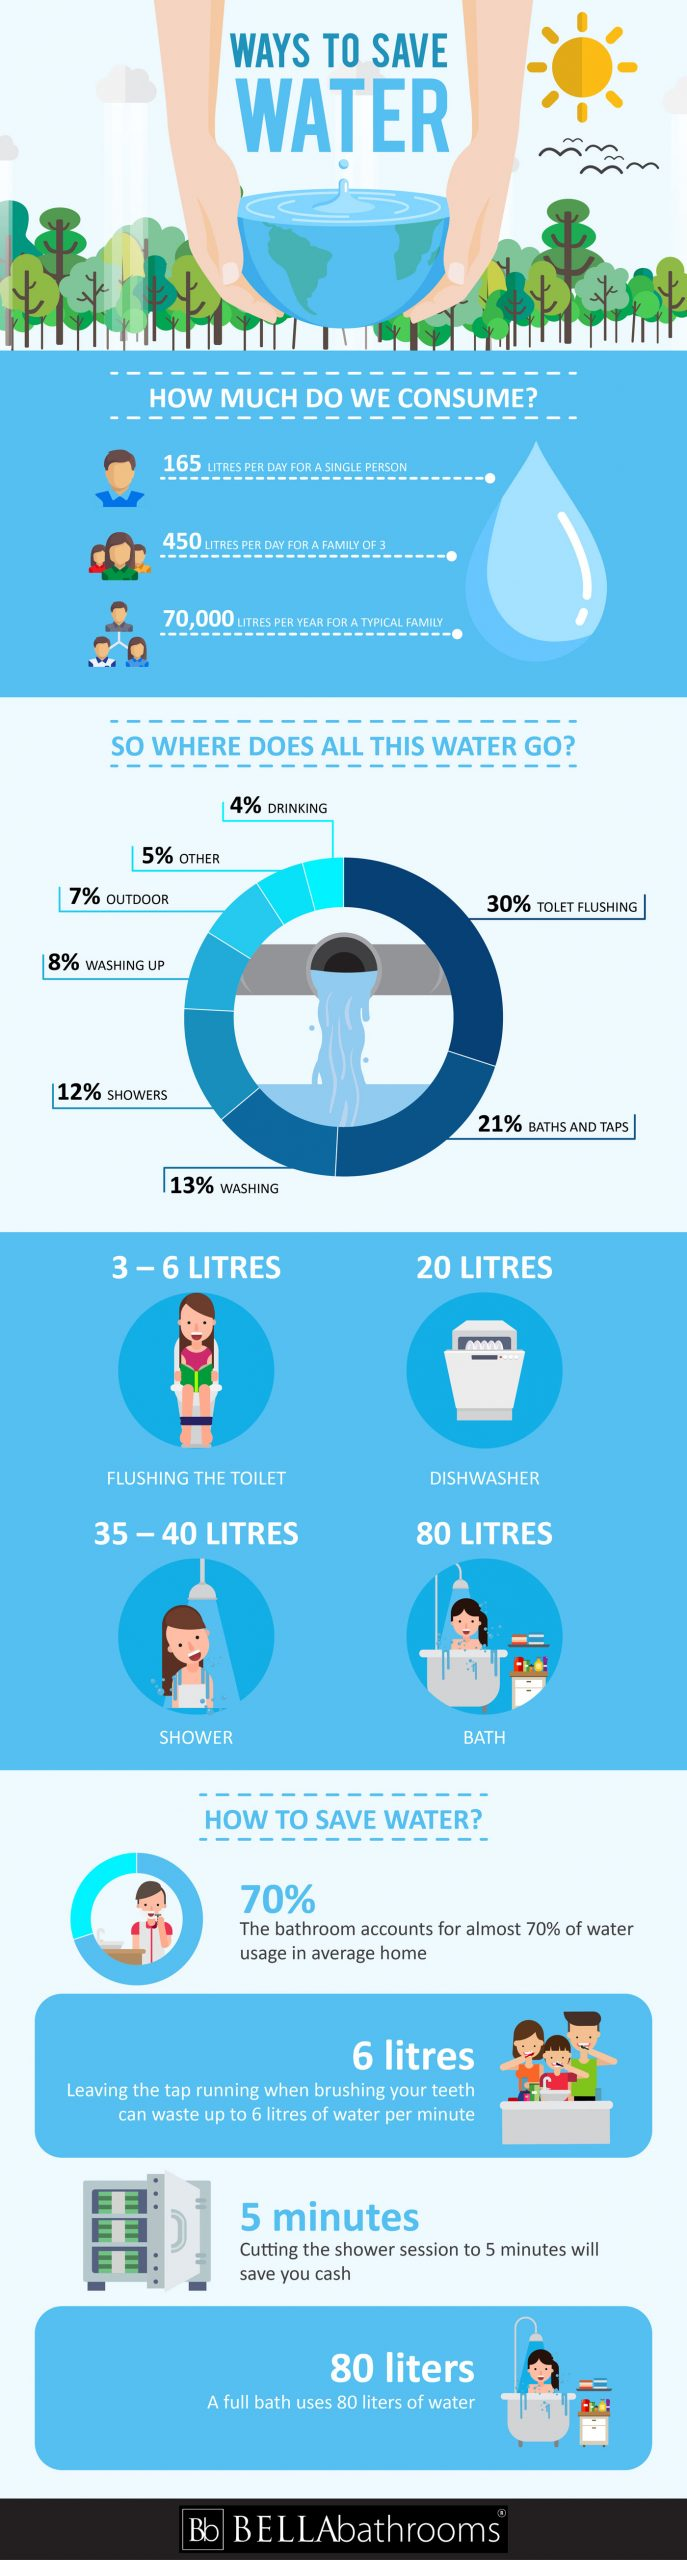 Infographic showing different ways to save water in the bathroom